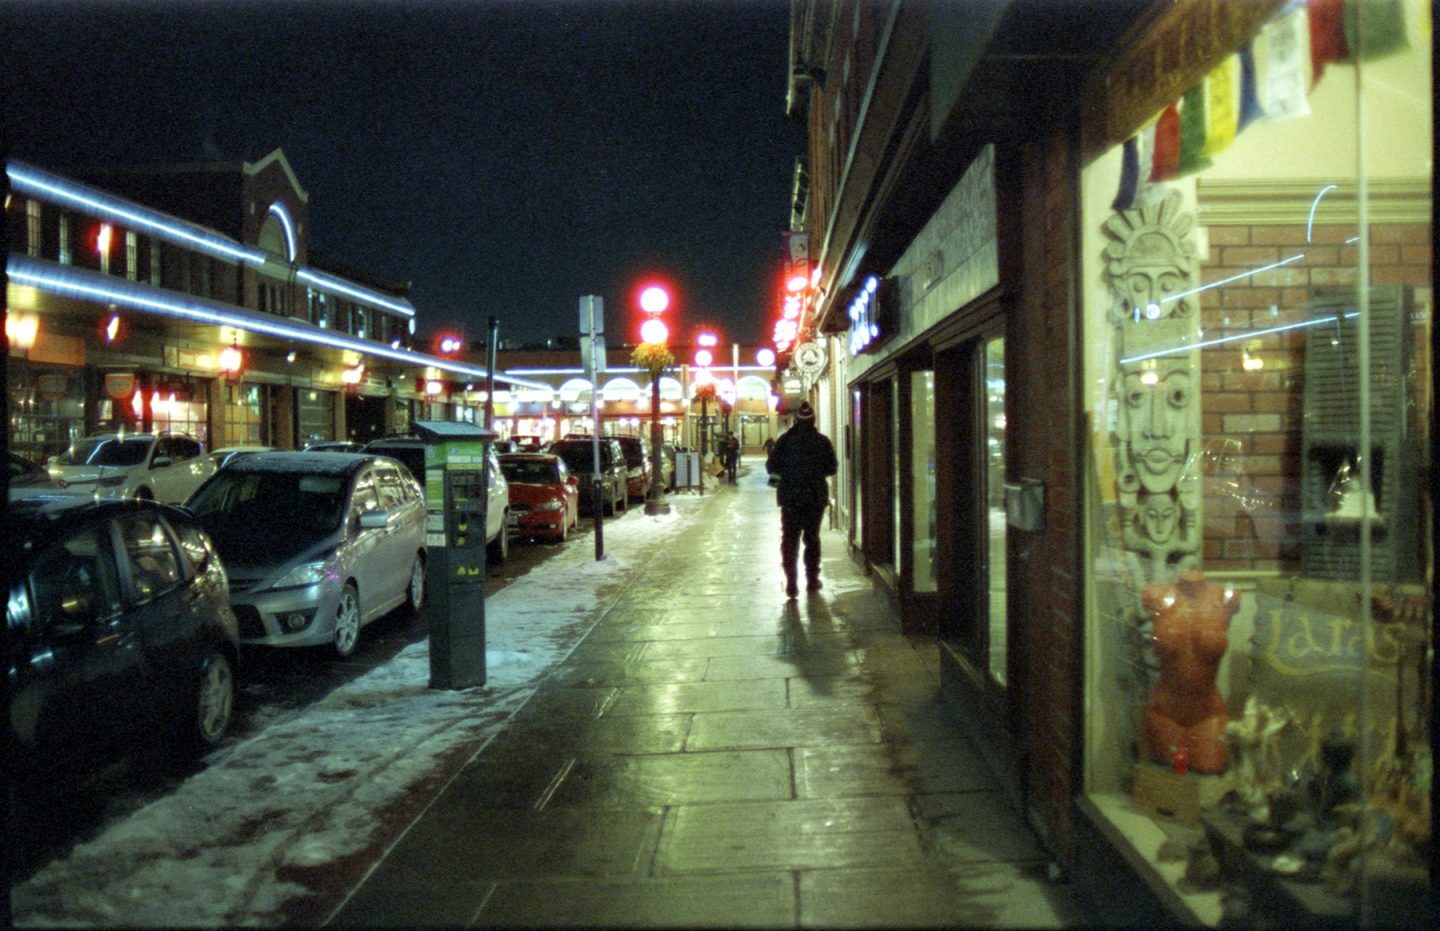 CineStill ISO 800 35mm Nikon F4 Ottawa A Medium View